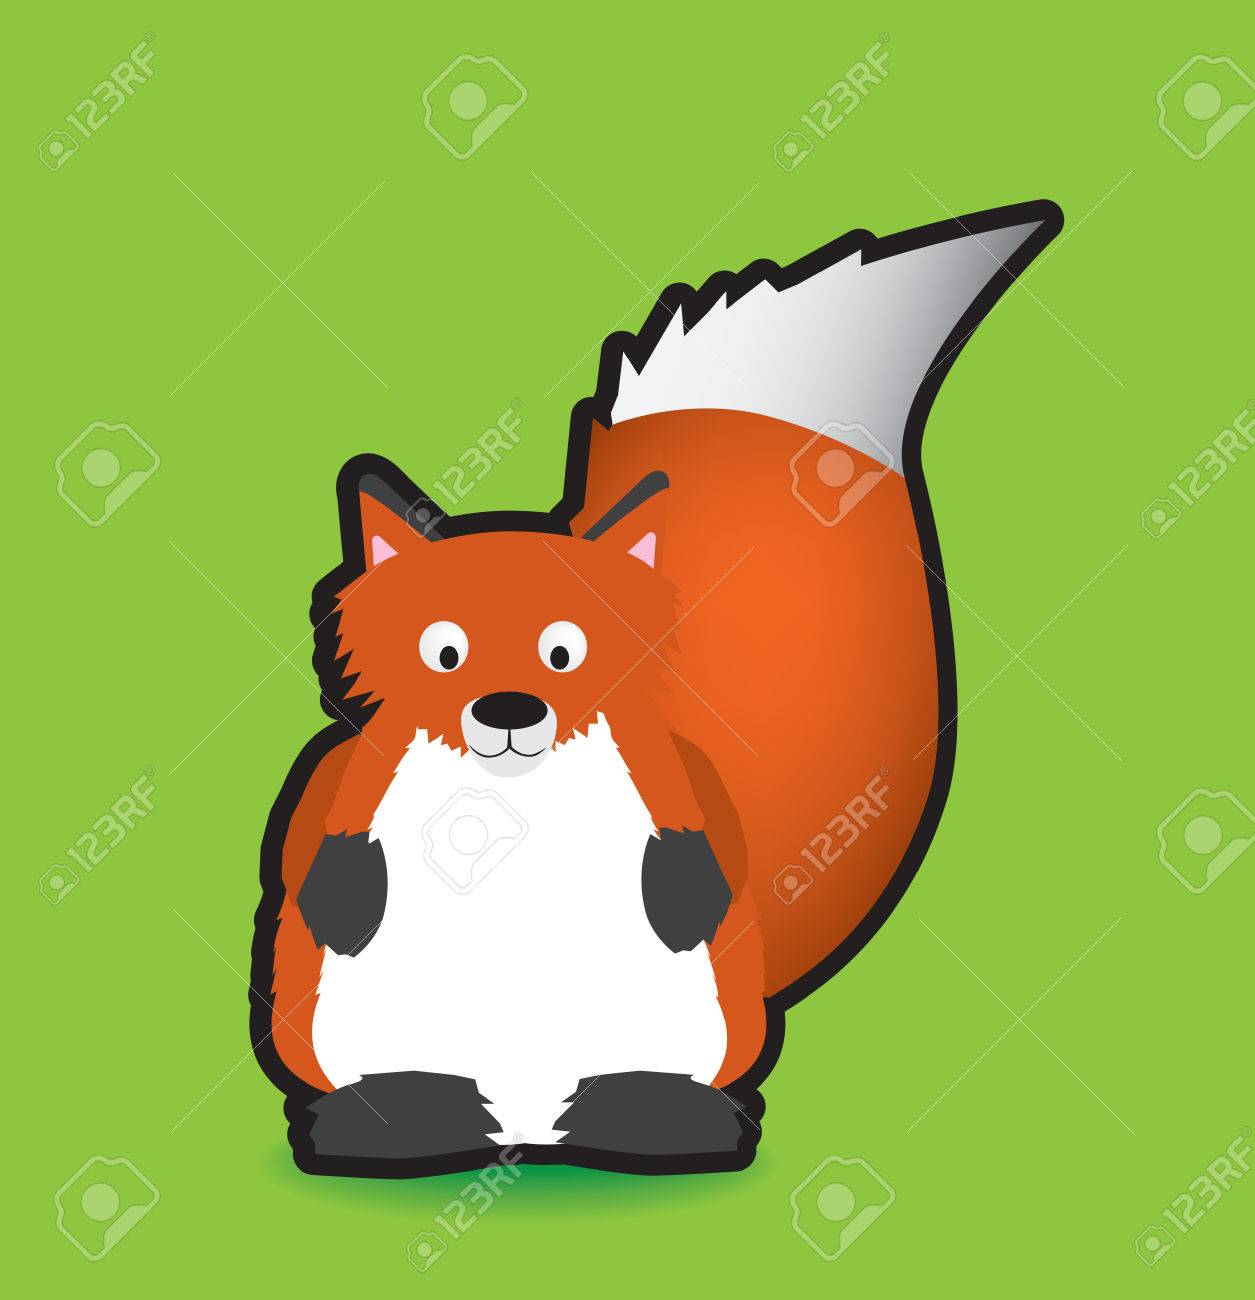 Funky vector illustration of a fox with a chunky black outline Stock Vector - 4553511